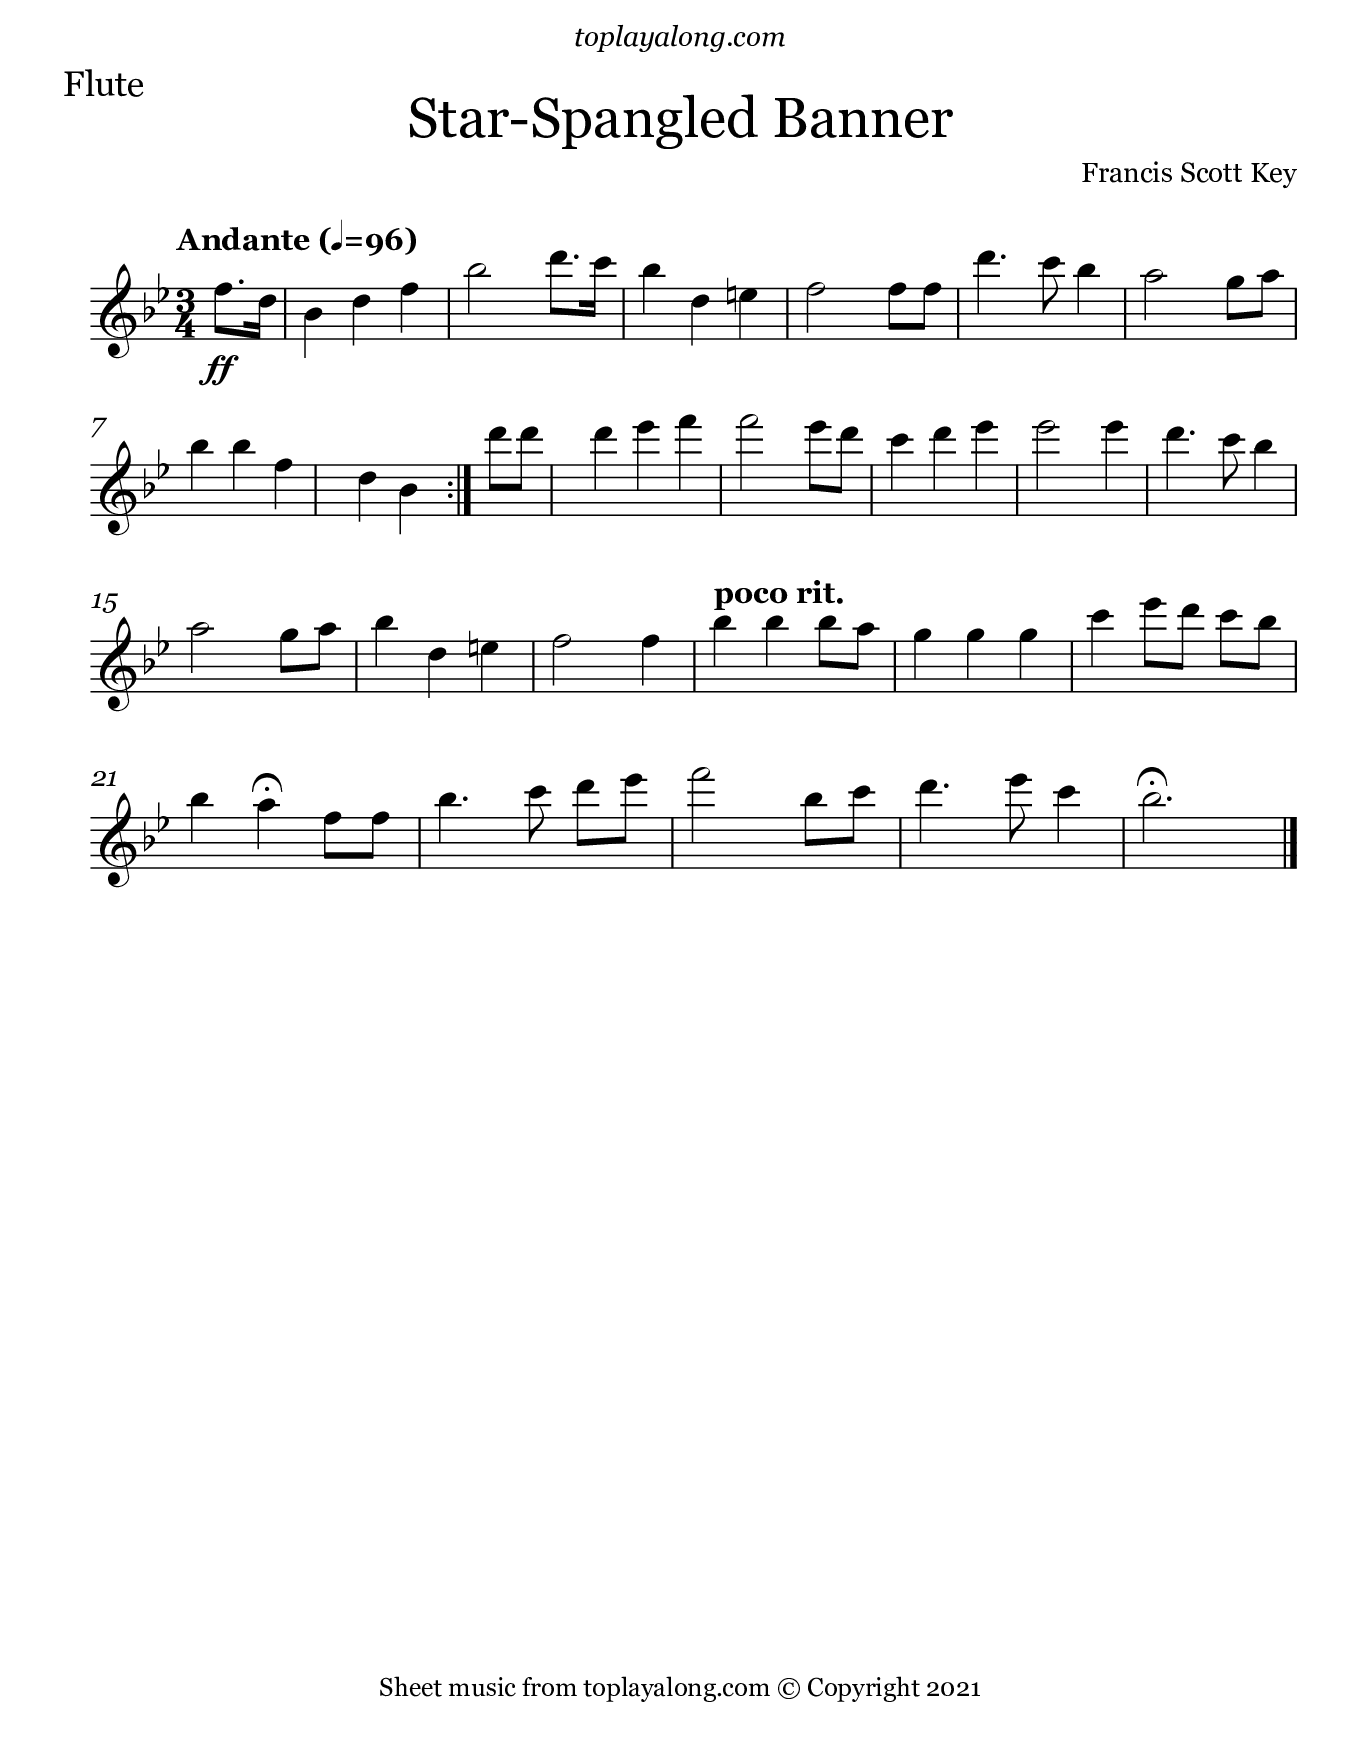 Star-Spangled Banner. Sheet music for Flute, page 1.